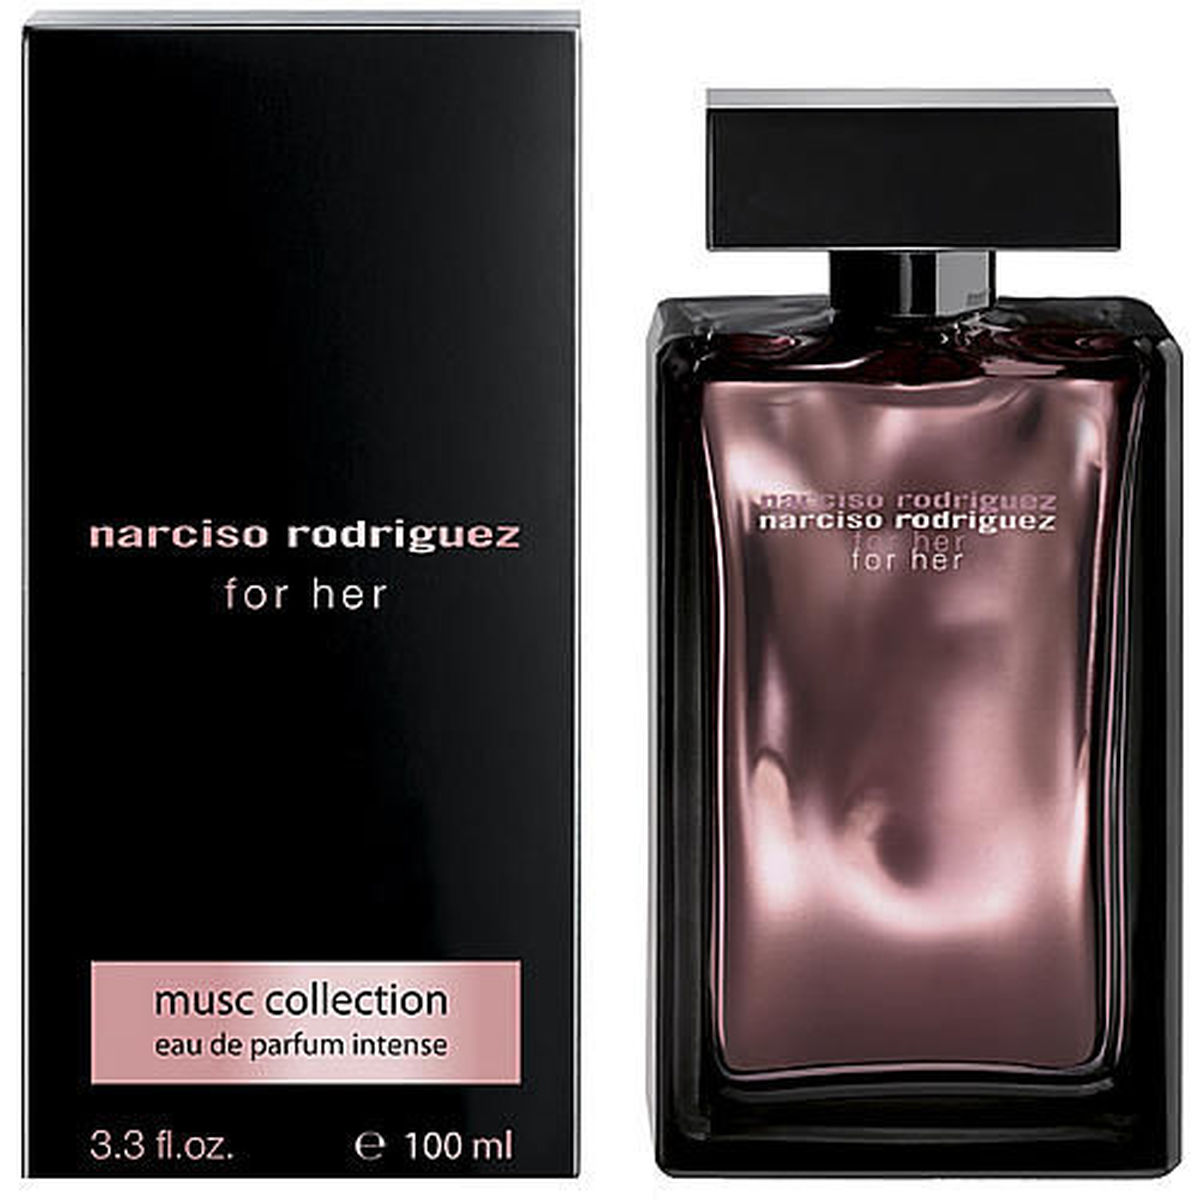 Narciso Rodriguez for Her Musc Collection Eau de Parfum Intense 100ml